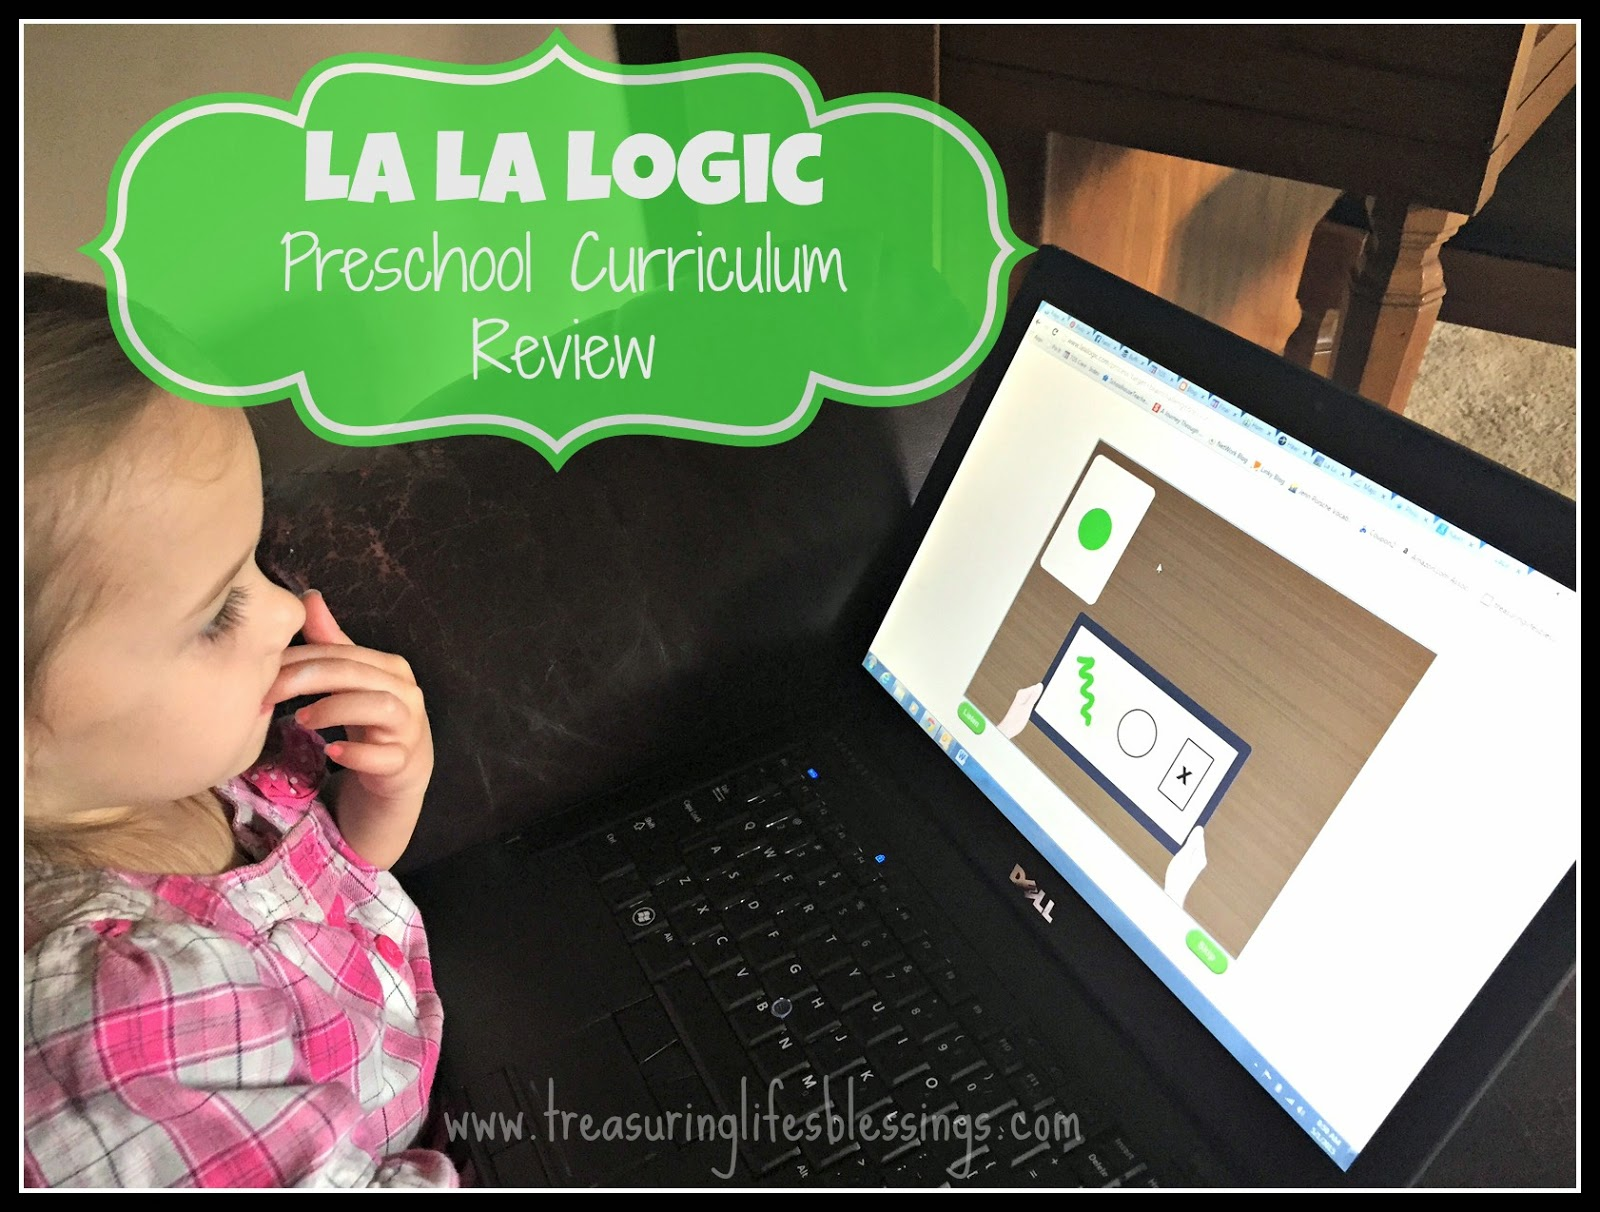 La La Logic Preschool Curriculum